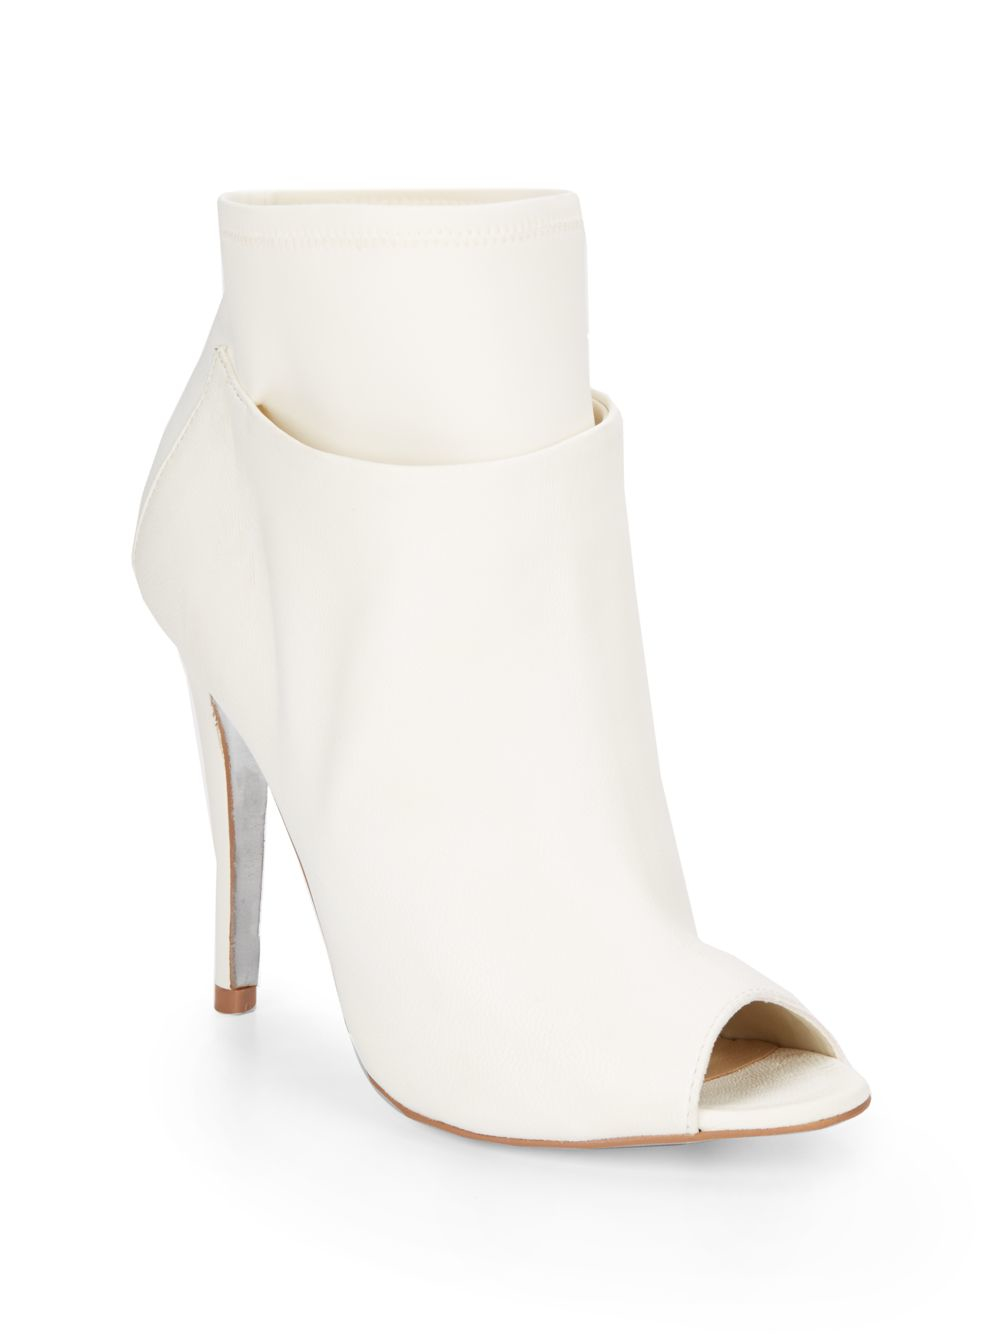 24906ecf41 Gallery. Previously sold at: Saks OFF 5TH · Women's Peep Toe Booties